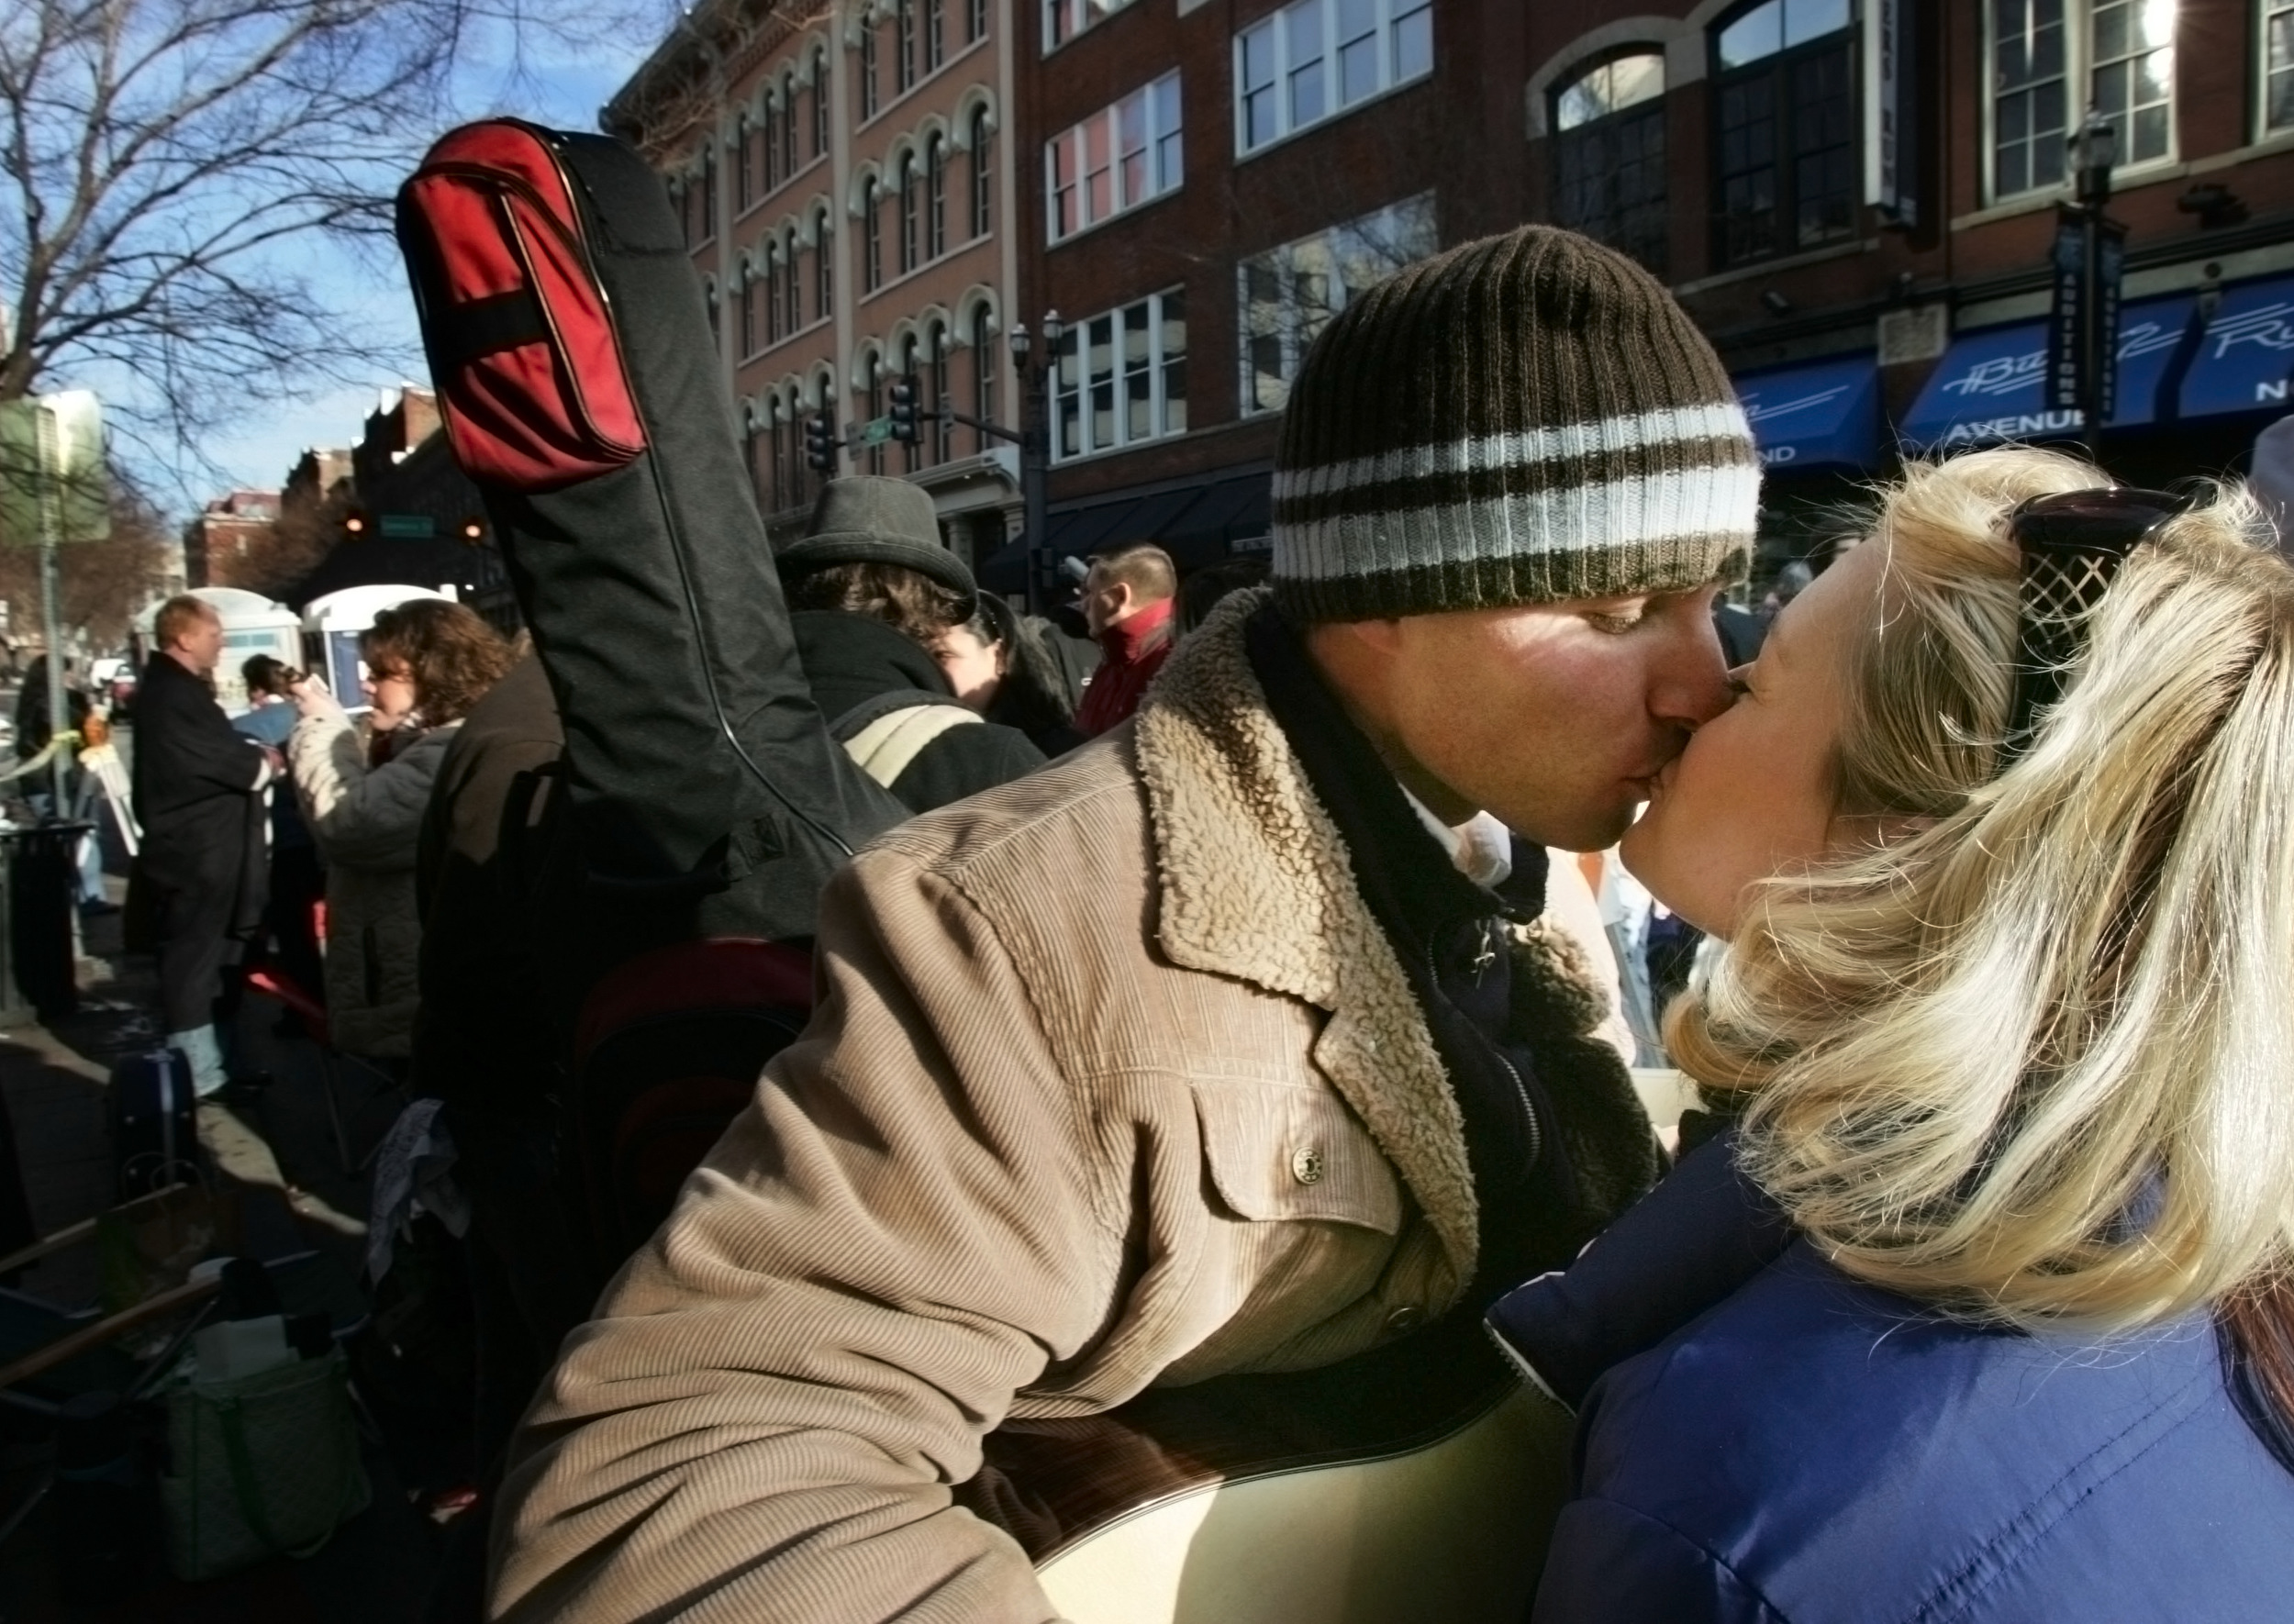 Singing partners Keesha Scott of Los Angeles, and Erik DiNardo of Boston share a friendly kiss as they wait in line downtown to audition for Can You Duet, a new talent show from American Idol producers Saturday, January 12, 2008 in Nashville, Tenn. T